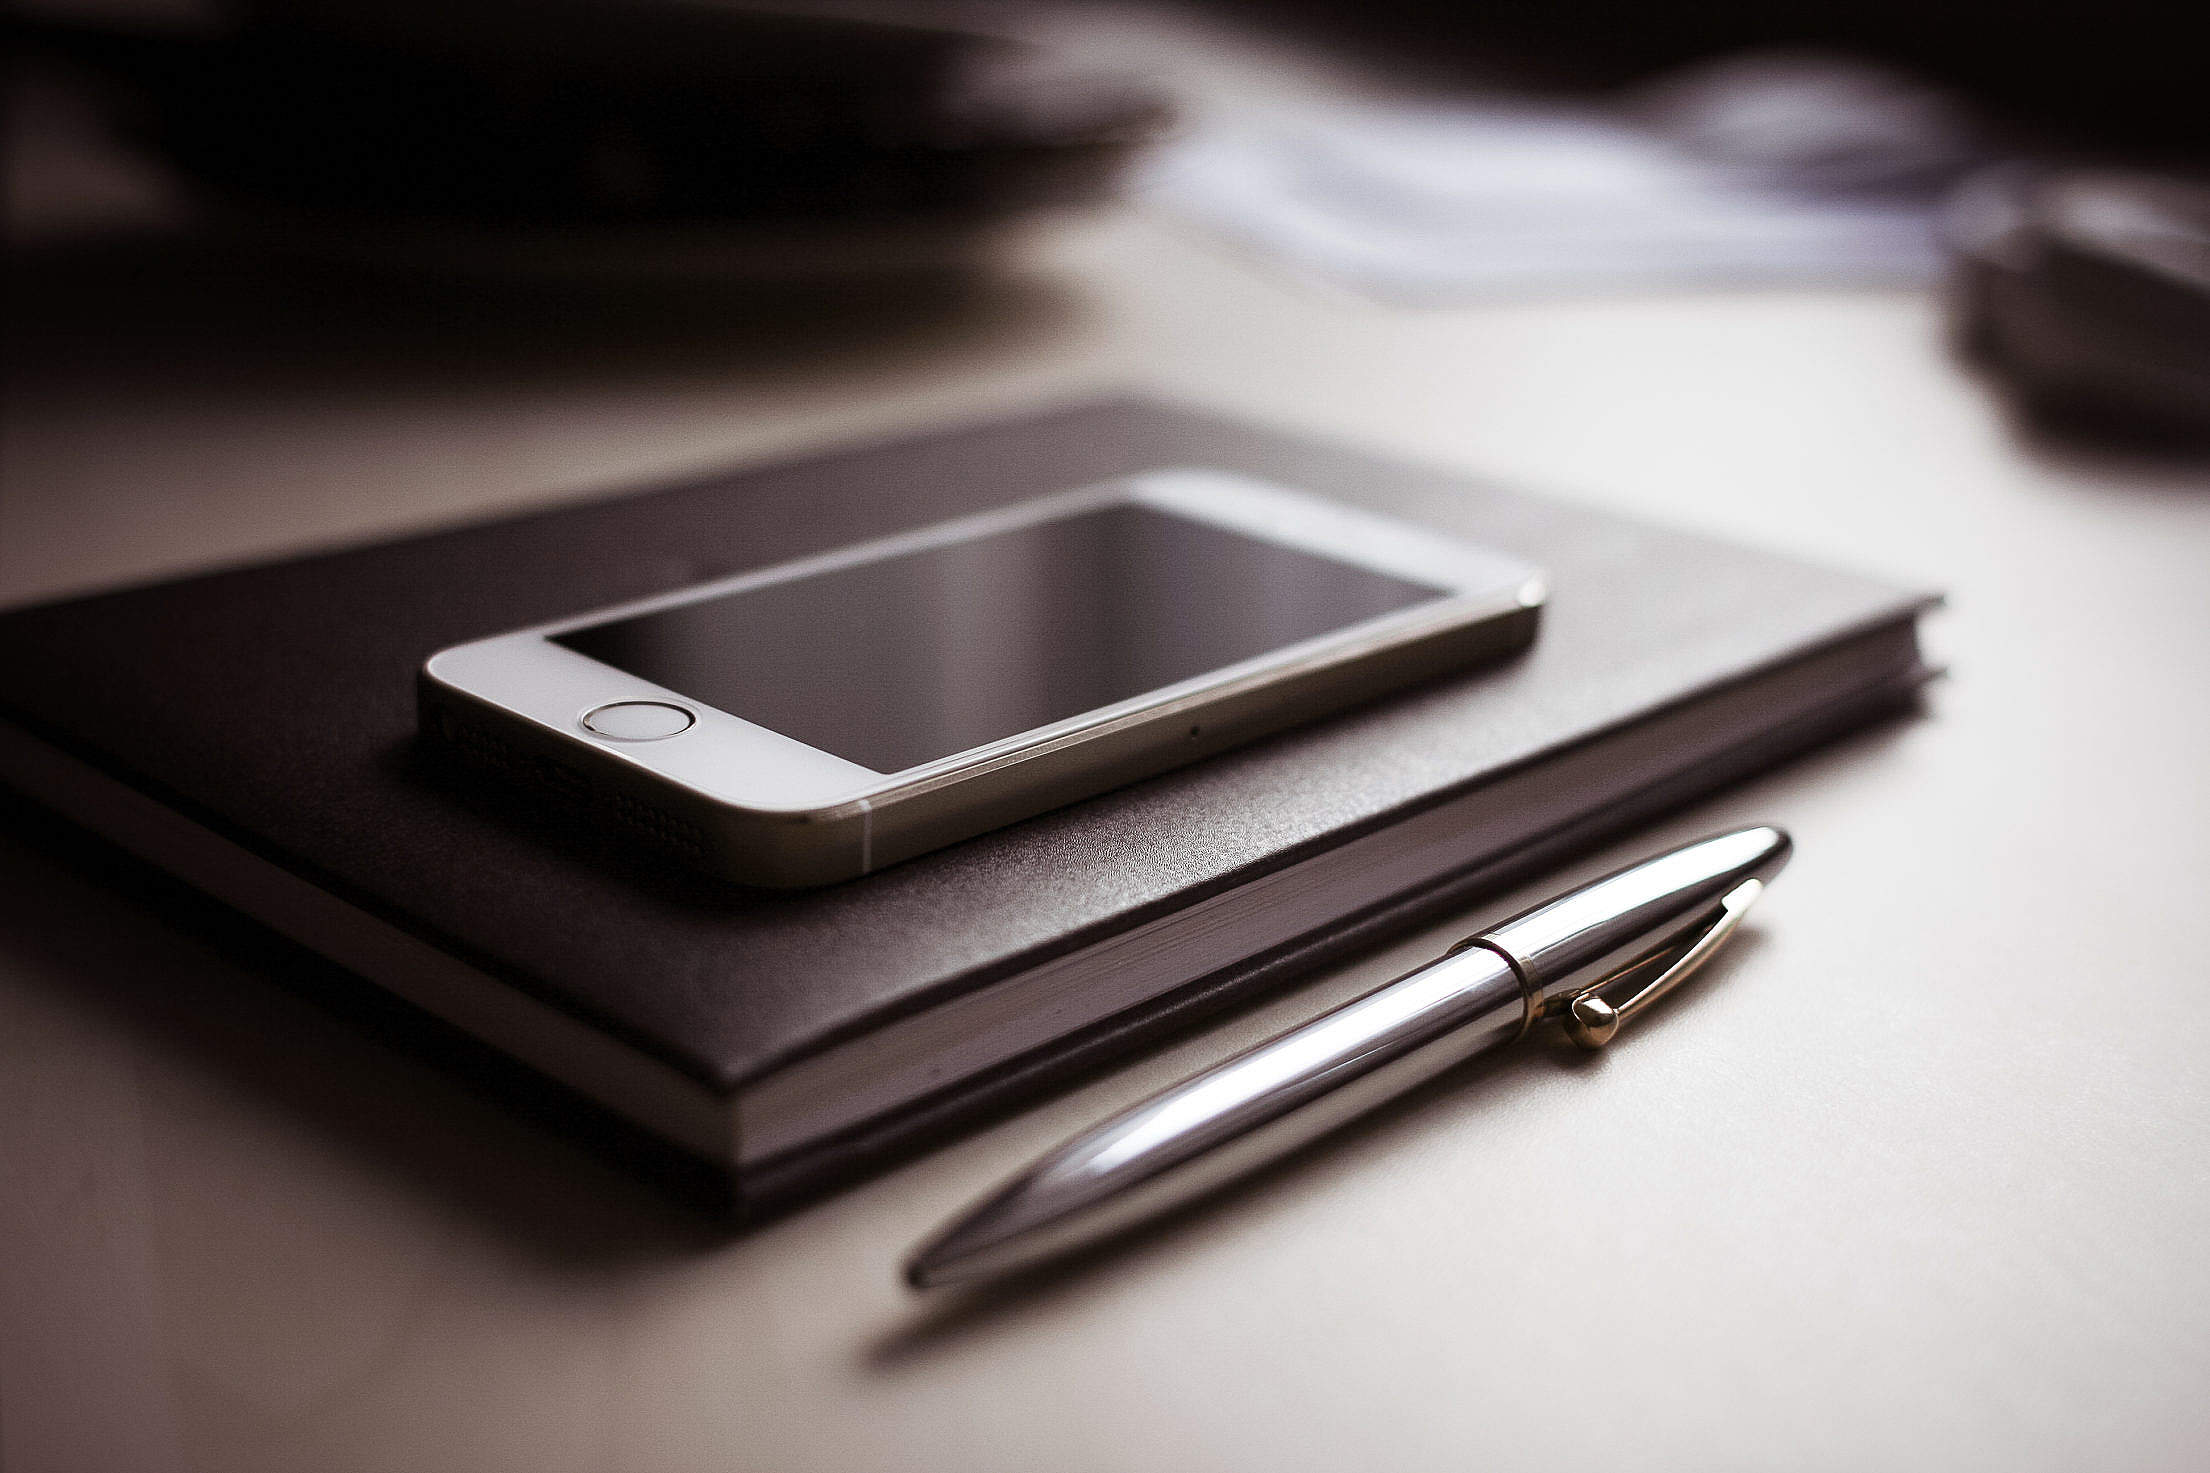 Diary with new iPhone 5S and Pen Free Stock Photo